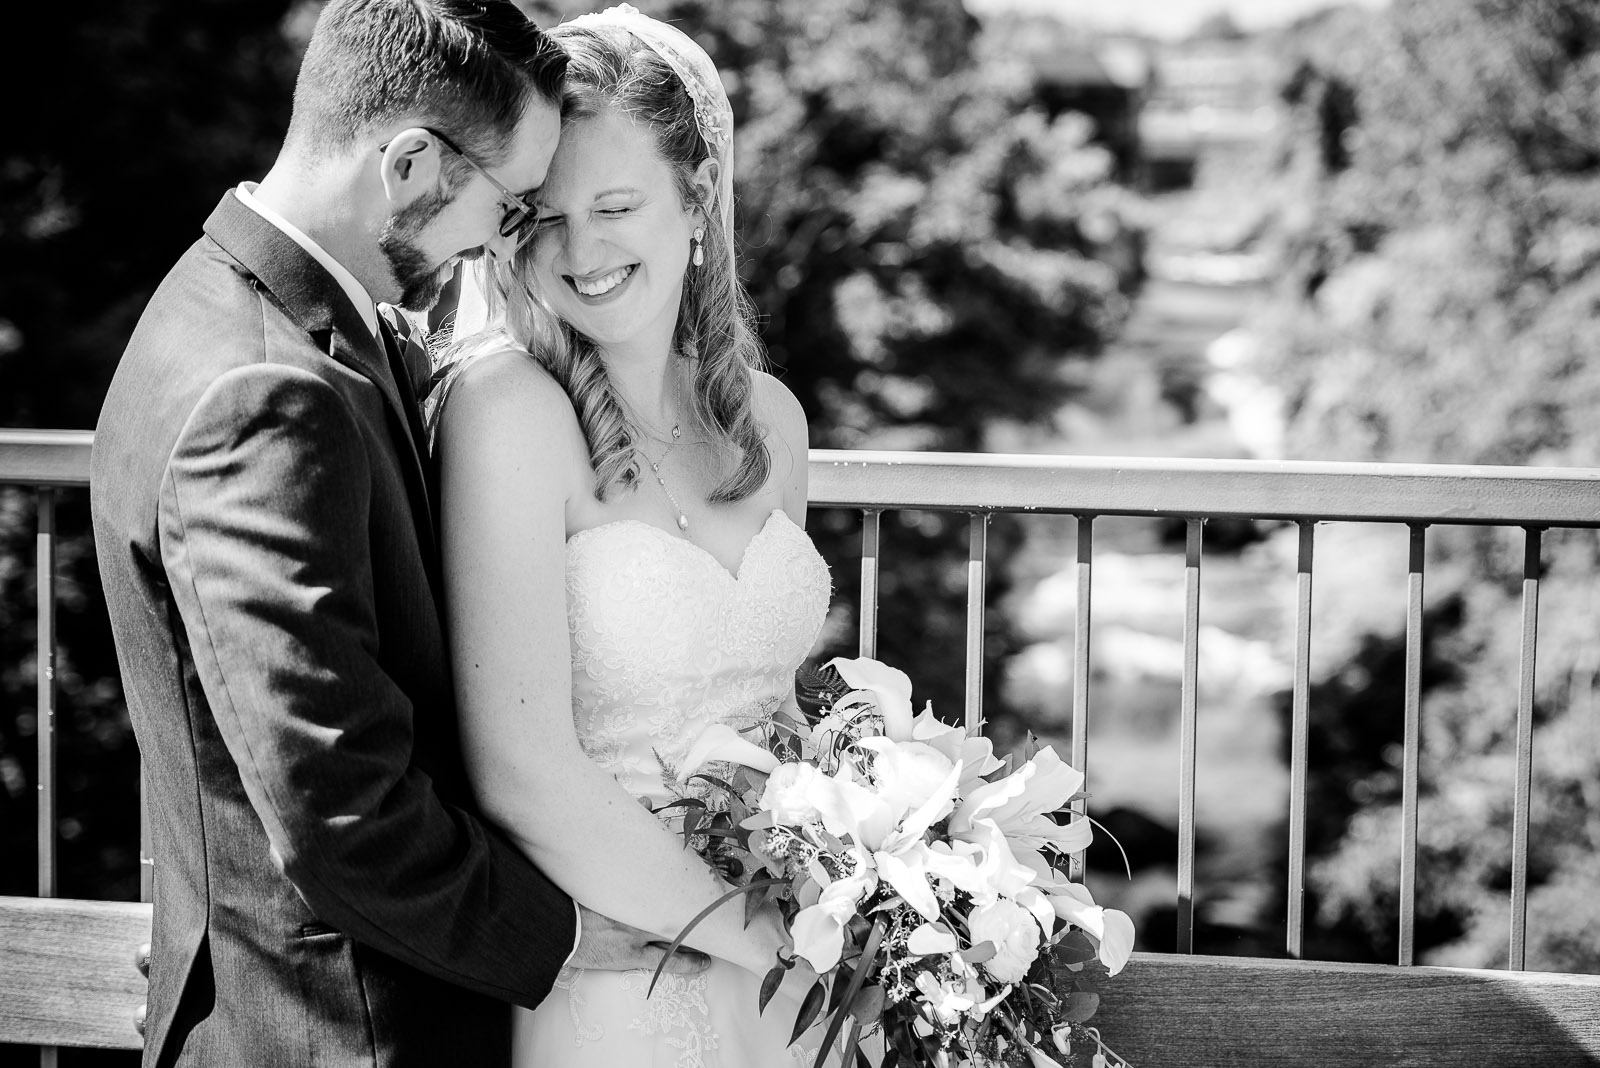 Eric_and_Christy_Photography_Blog_2018_Portraits-4